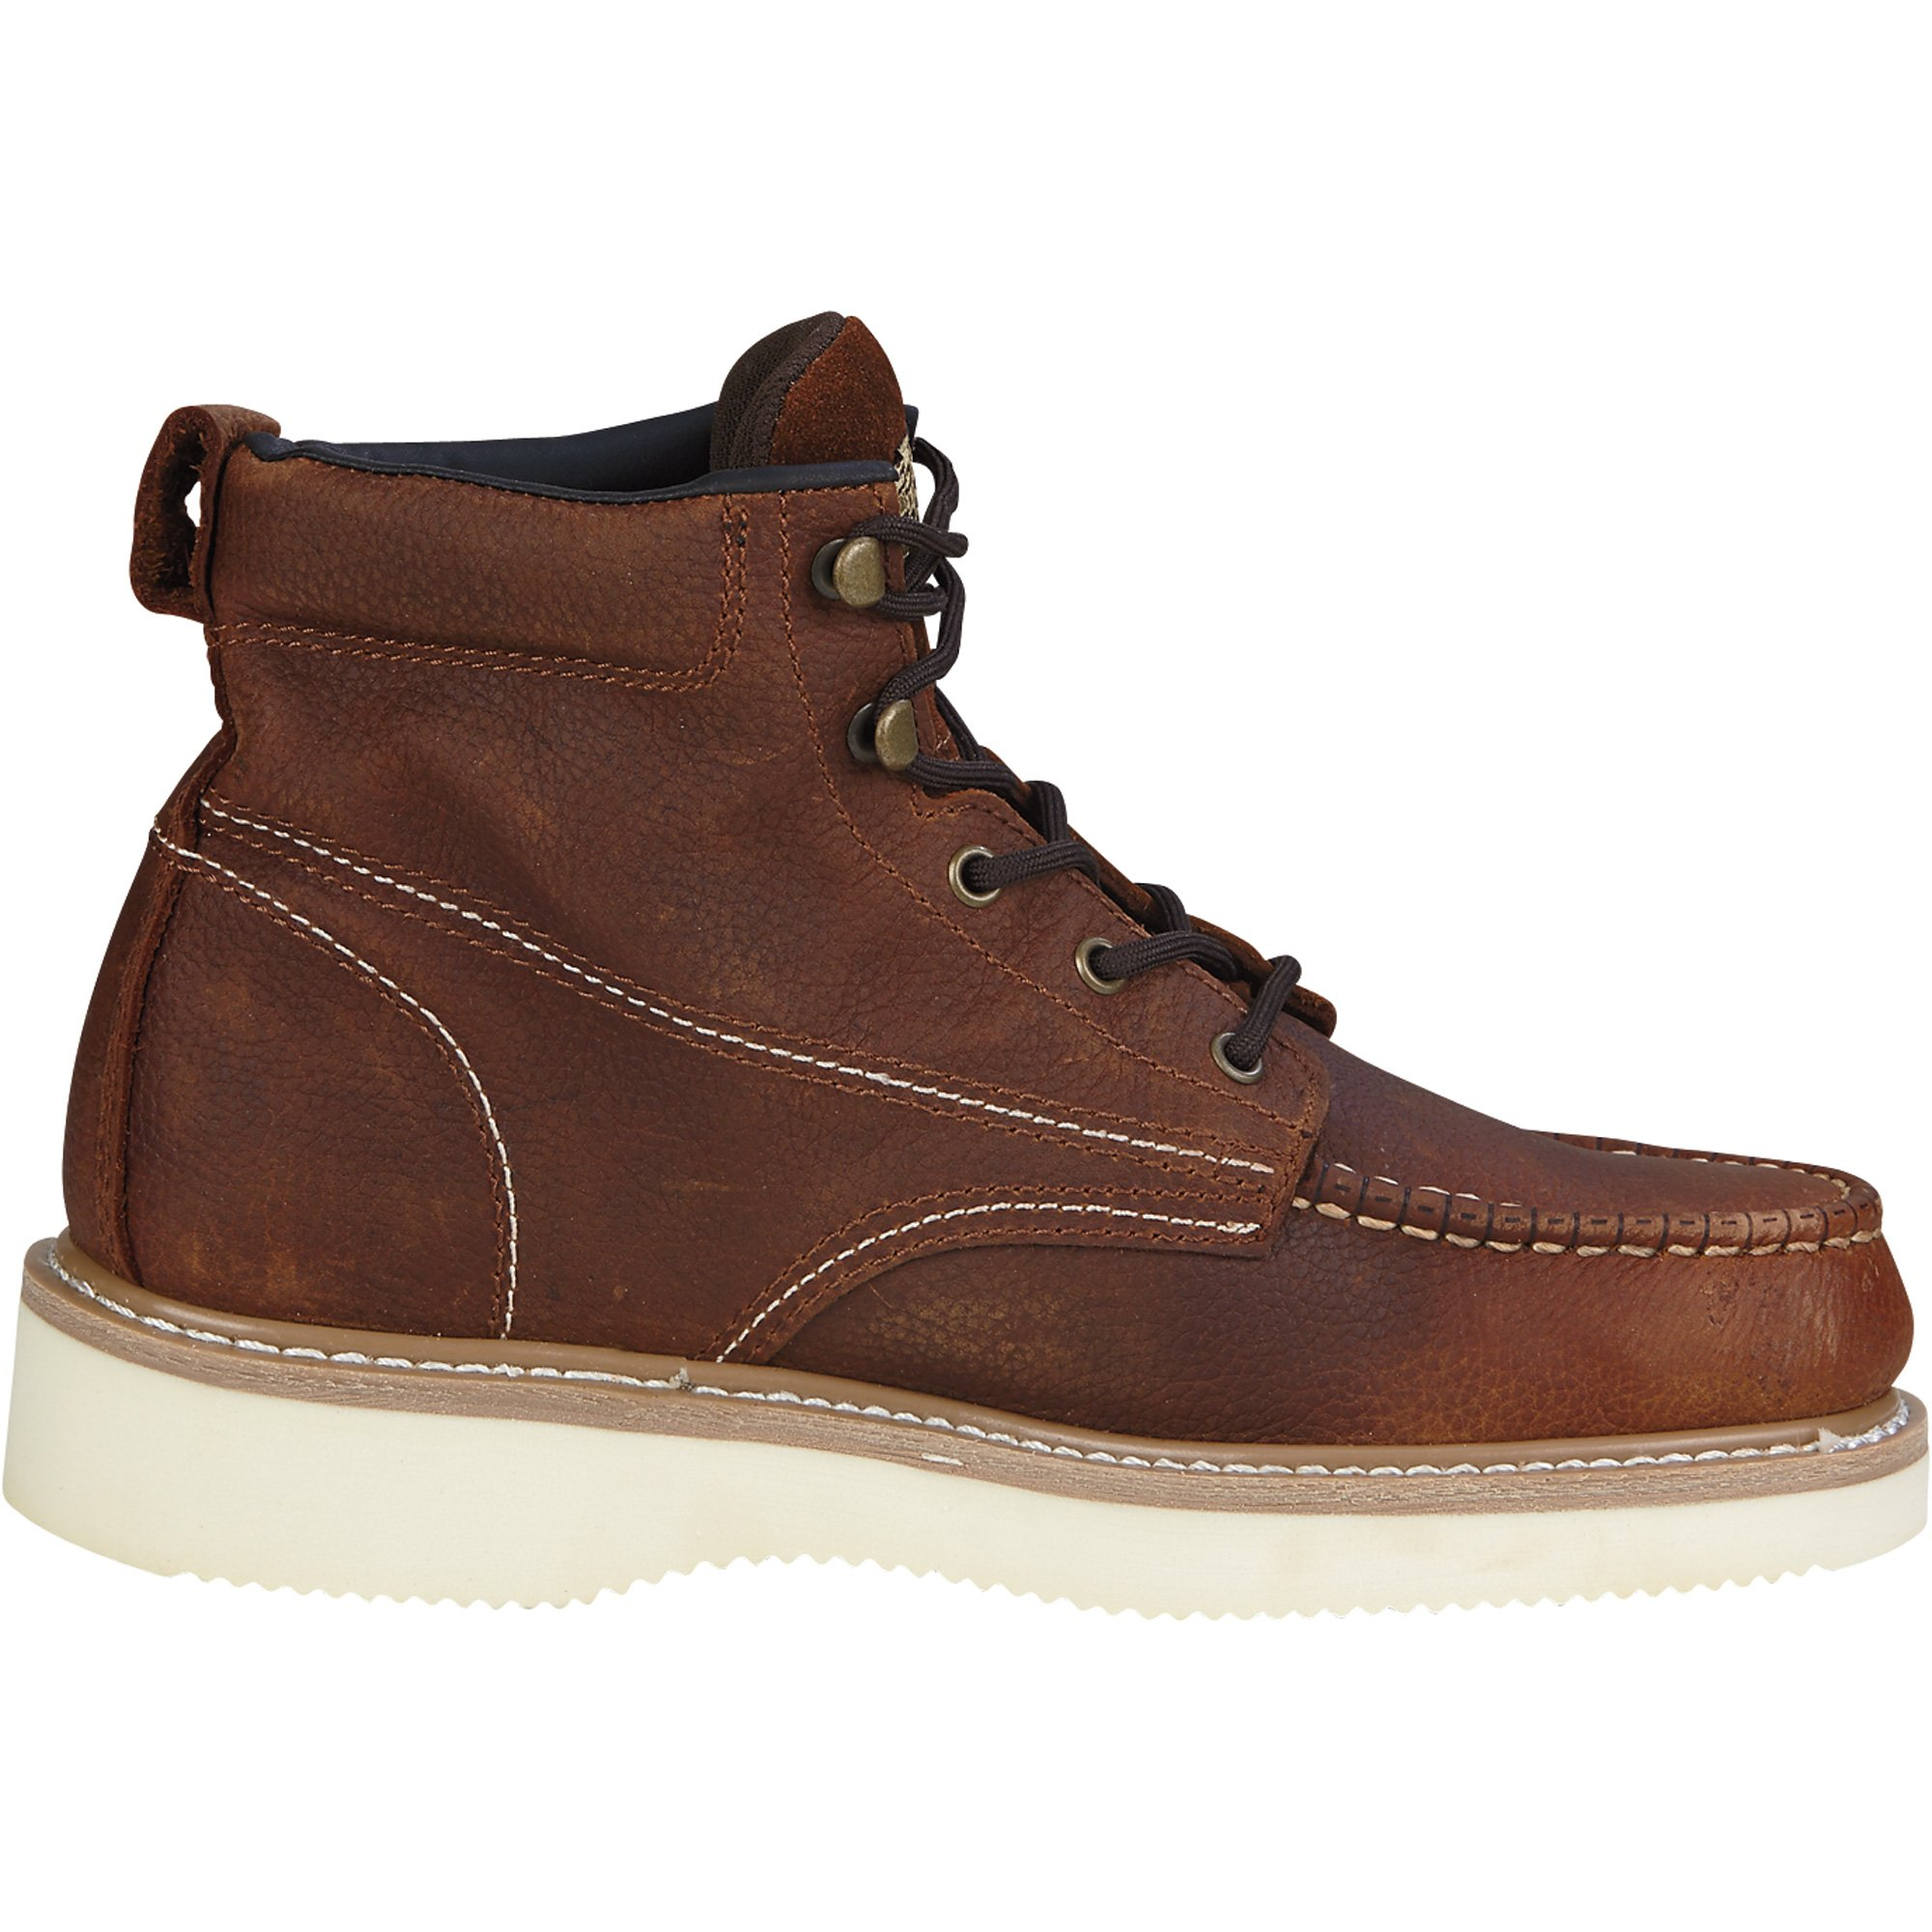 Gravel Gear 6in. Moc Toe Wedge Boot (10.5) by Gravel Gear (Image #4)